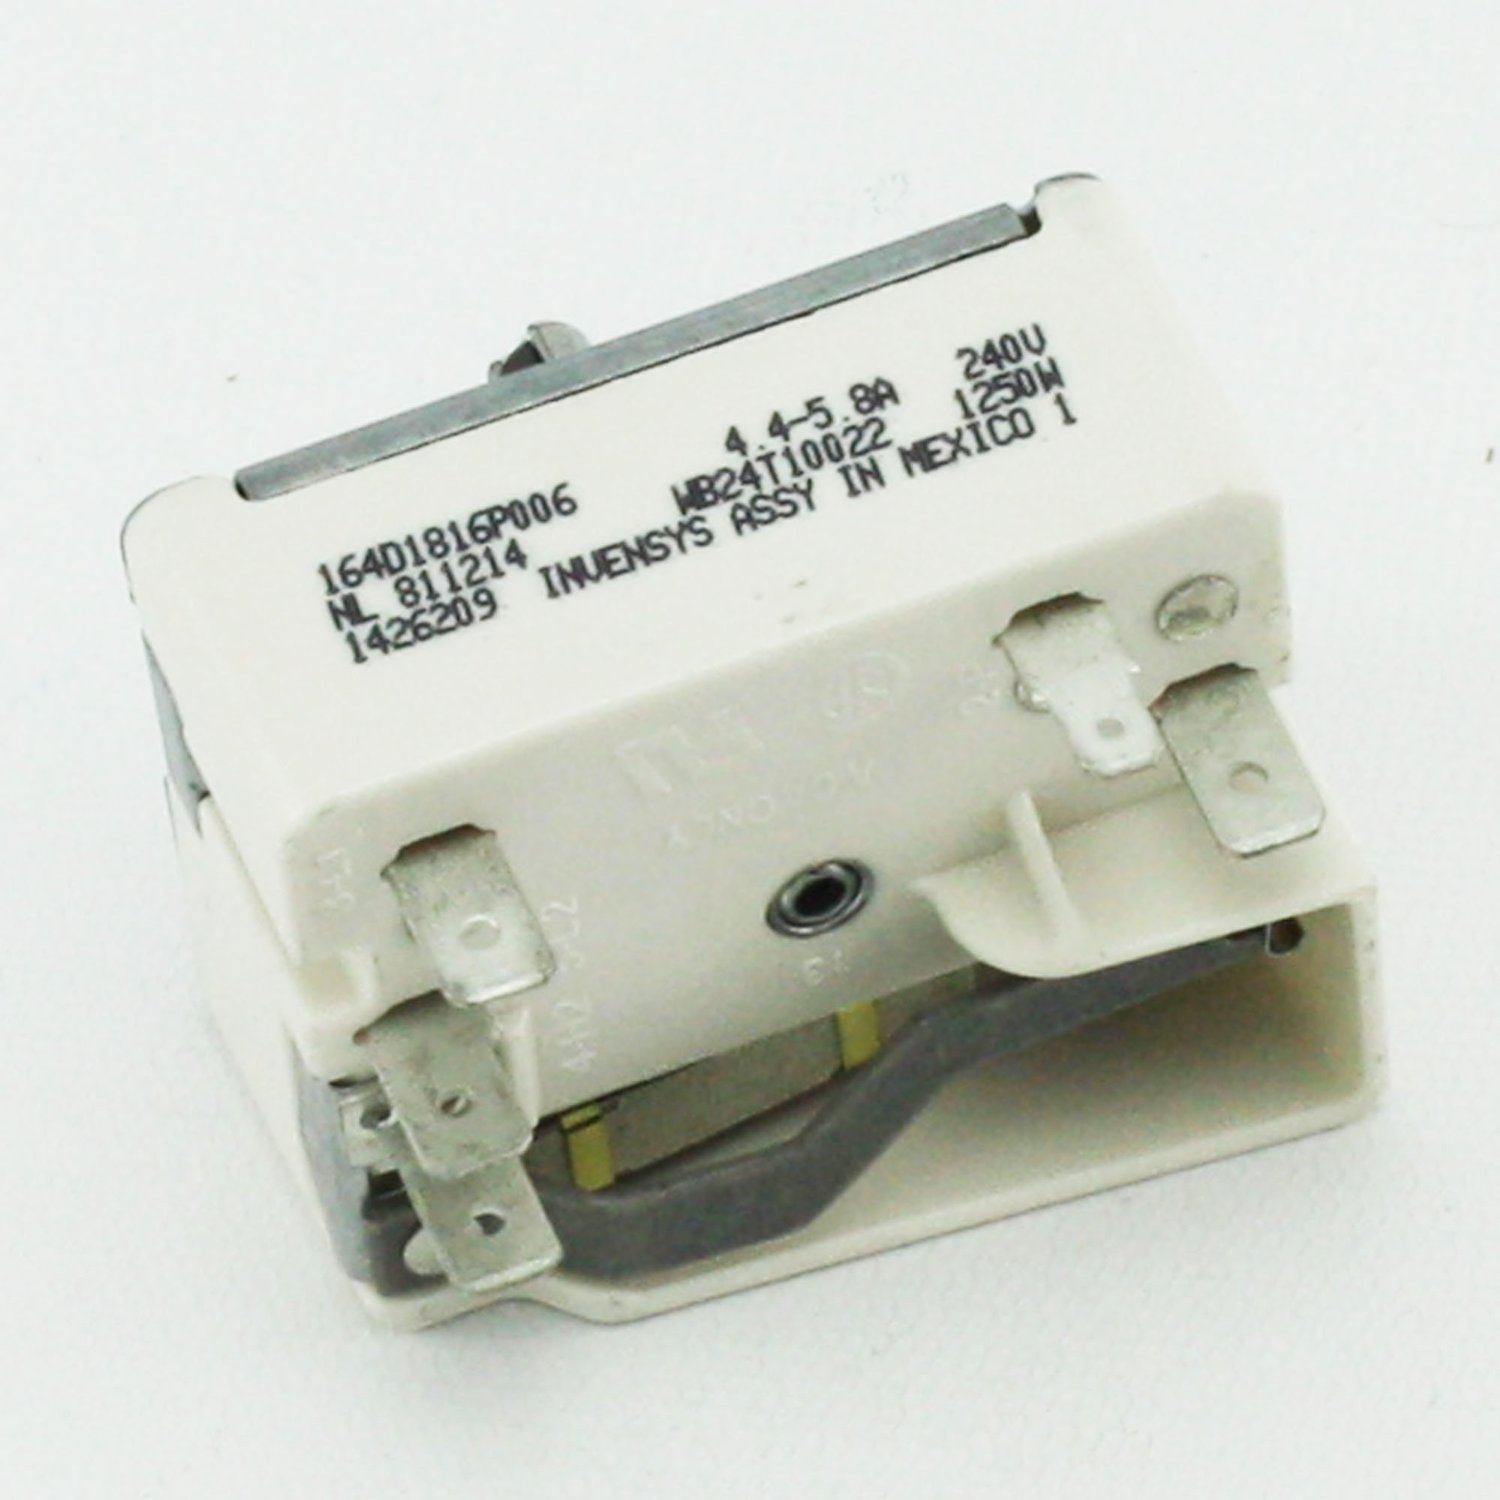 Edgewater Parts WB24T10022 Oven Surface Unit Infinite Switch Compatible with GE Oven by Edgewater Parts